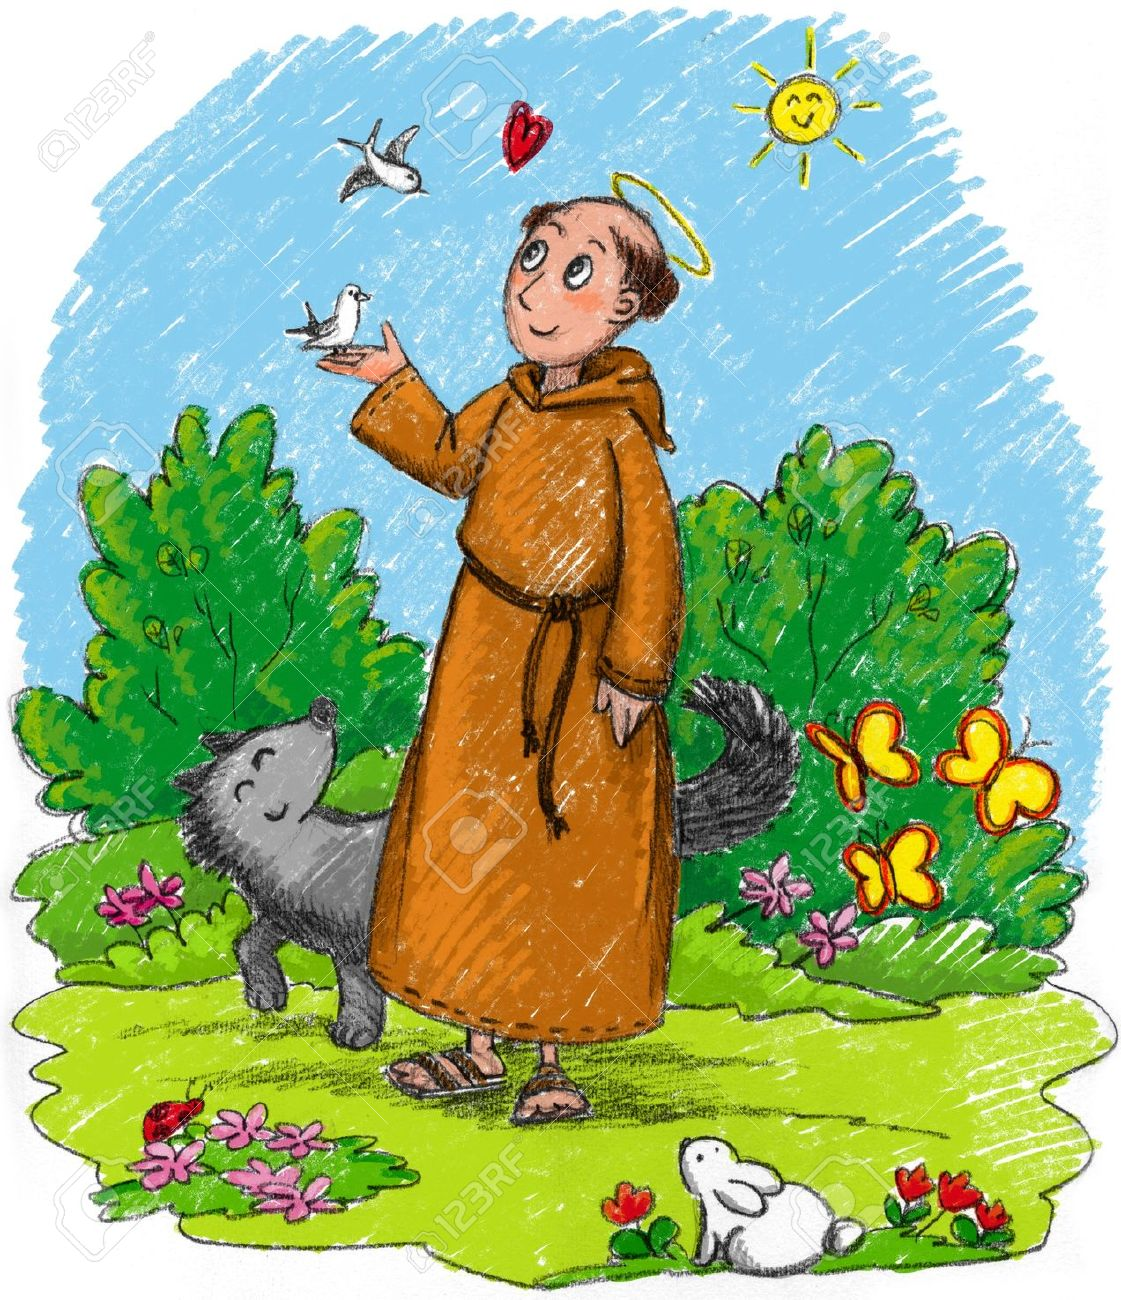 Saint Francis of Assisi in a wood with wild animals Stock Photo - 18463643